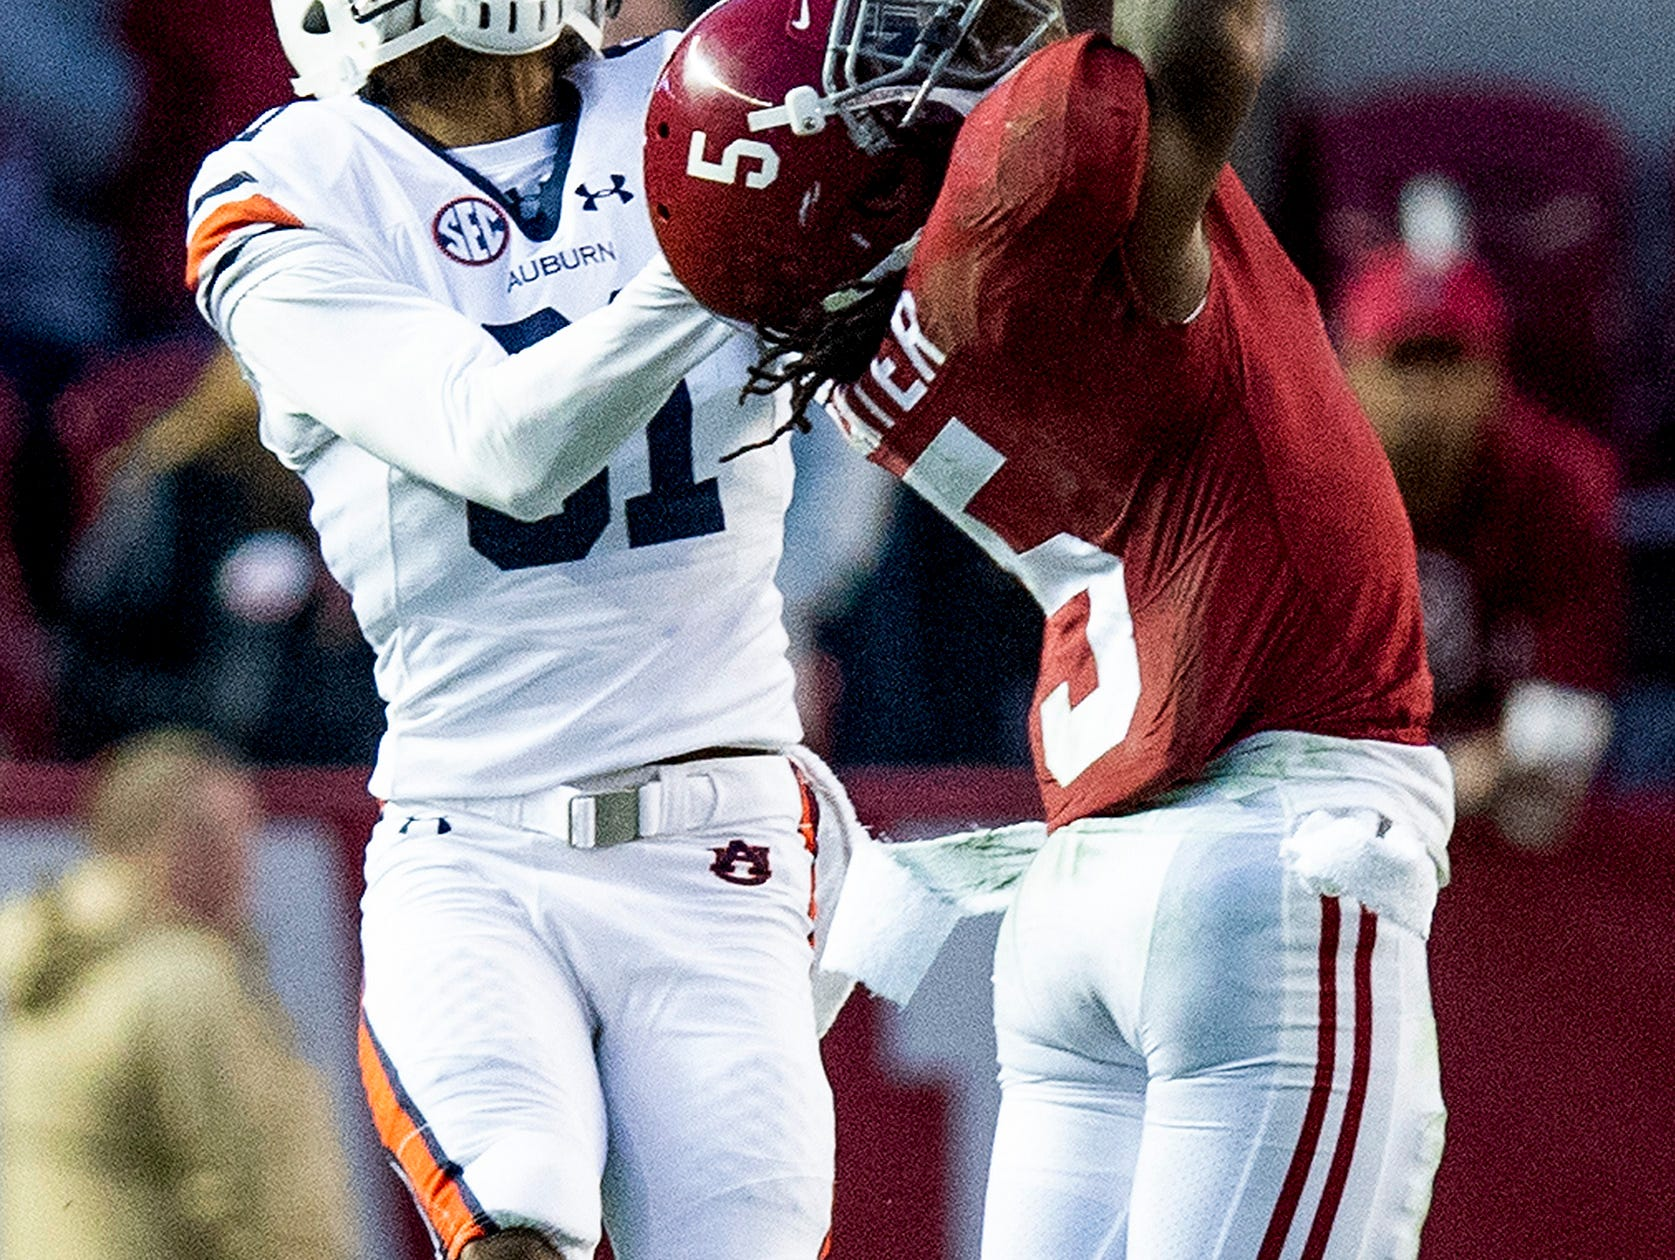 Alabama defensive back Shyheim Carter (5) breaks up a pass intended for Auburn wide receiver Darius Slayton (81) in second half action during the Iron Bowl at Bryant-Denny Stadium in Tuscaloosa, Ala., on Saturday November 24, 2018.